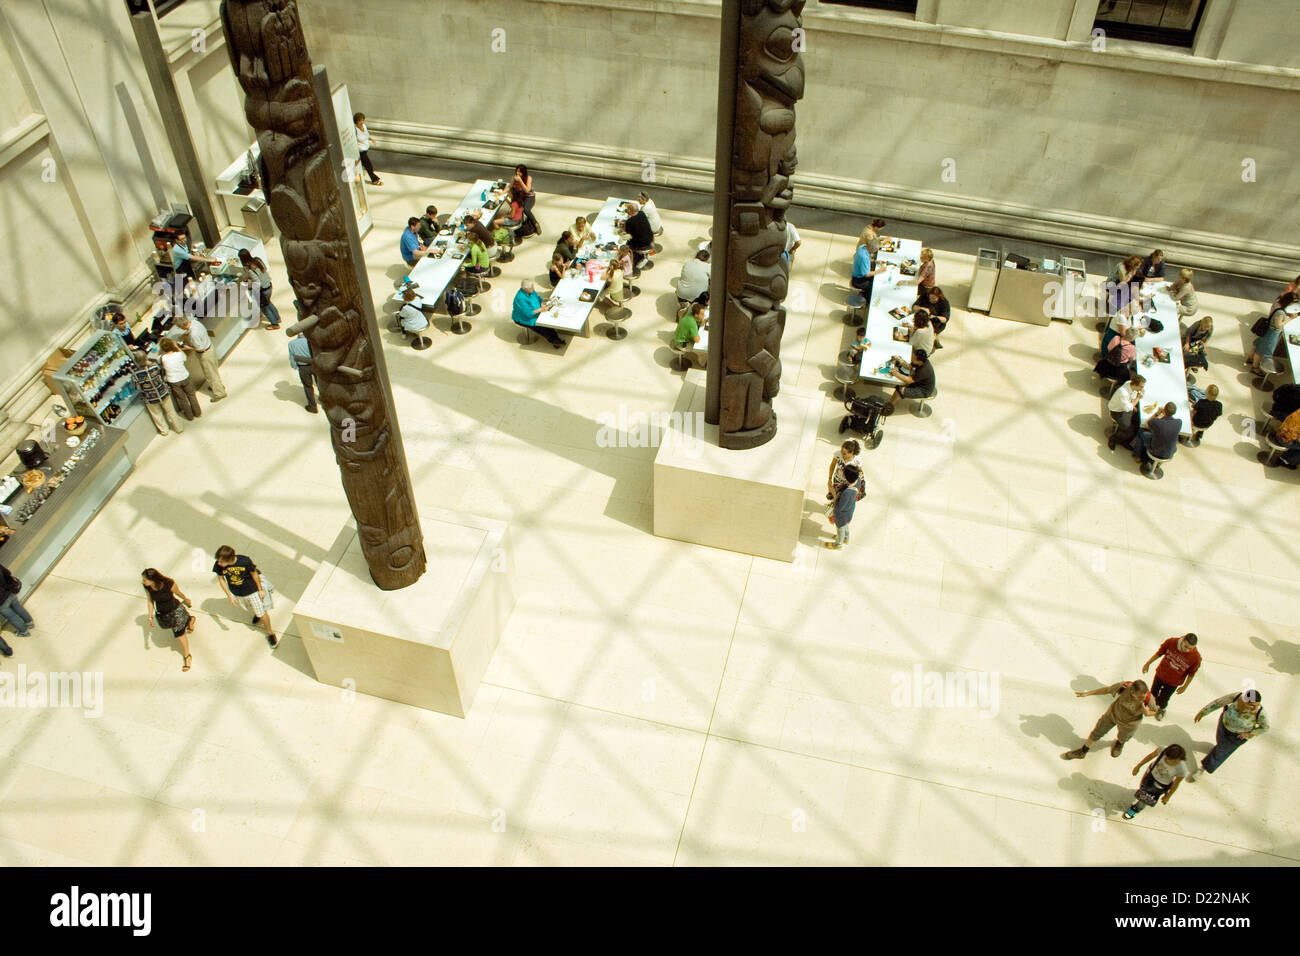 Foyer Museum London : People gathering and walking the main foyer at british museum